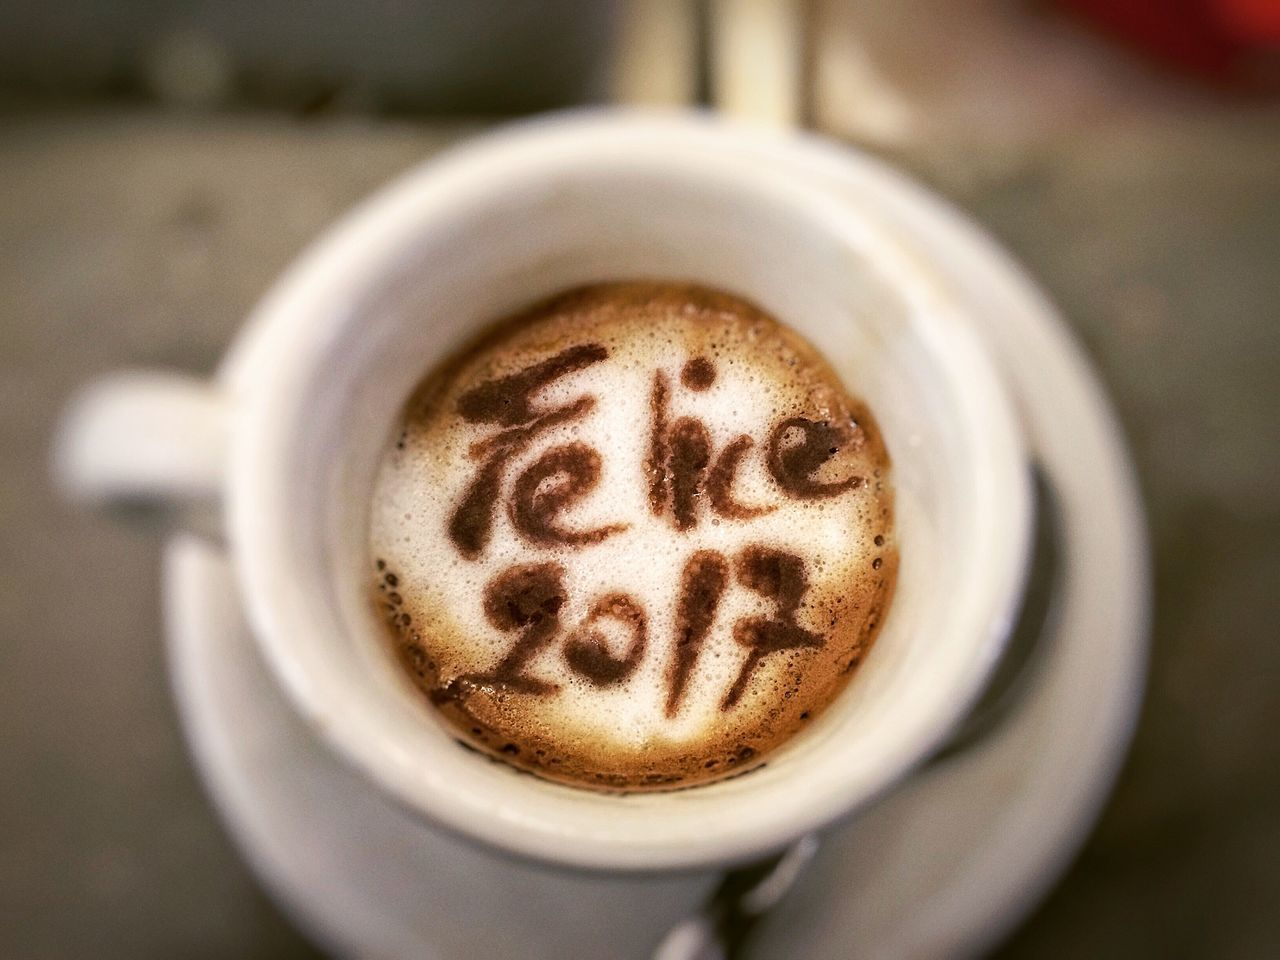 Coffee - Drink Coffee Cup Frothy Drink Drink Close-up Cappuccino Food And Drink Refreshment No People Indoors  Froth Art Latte 2017